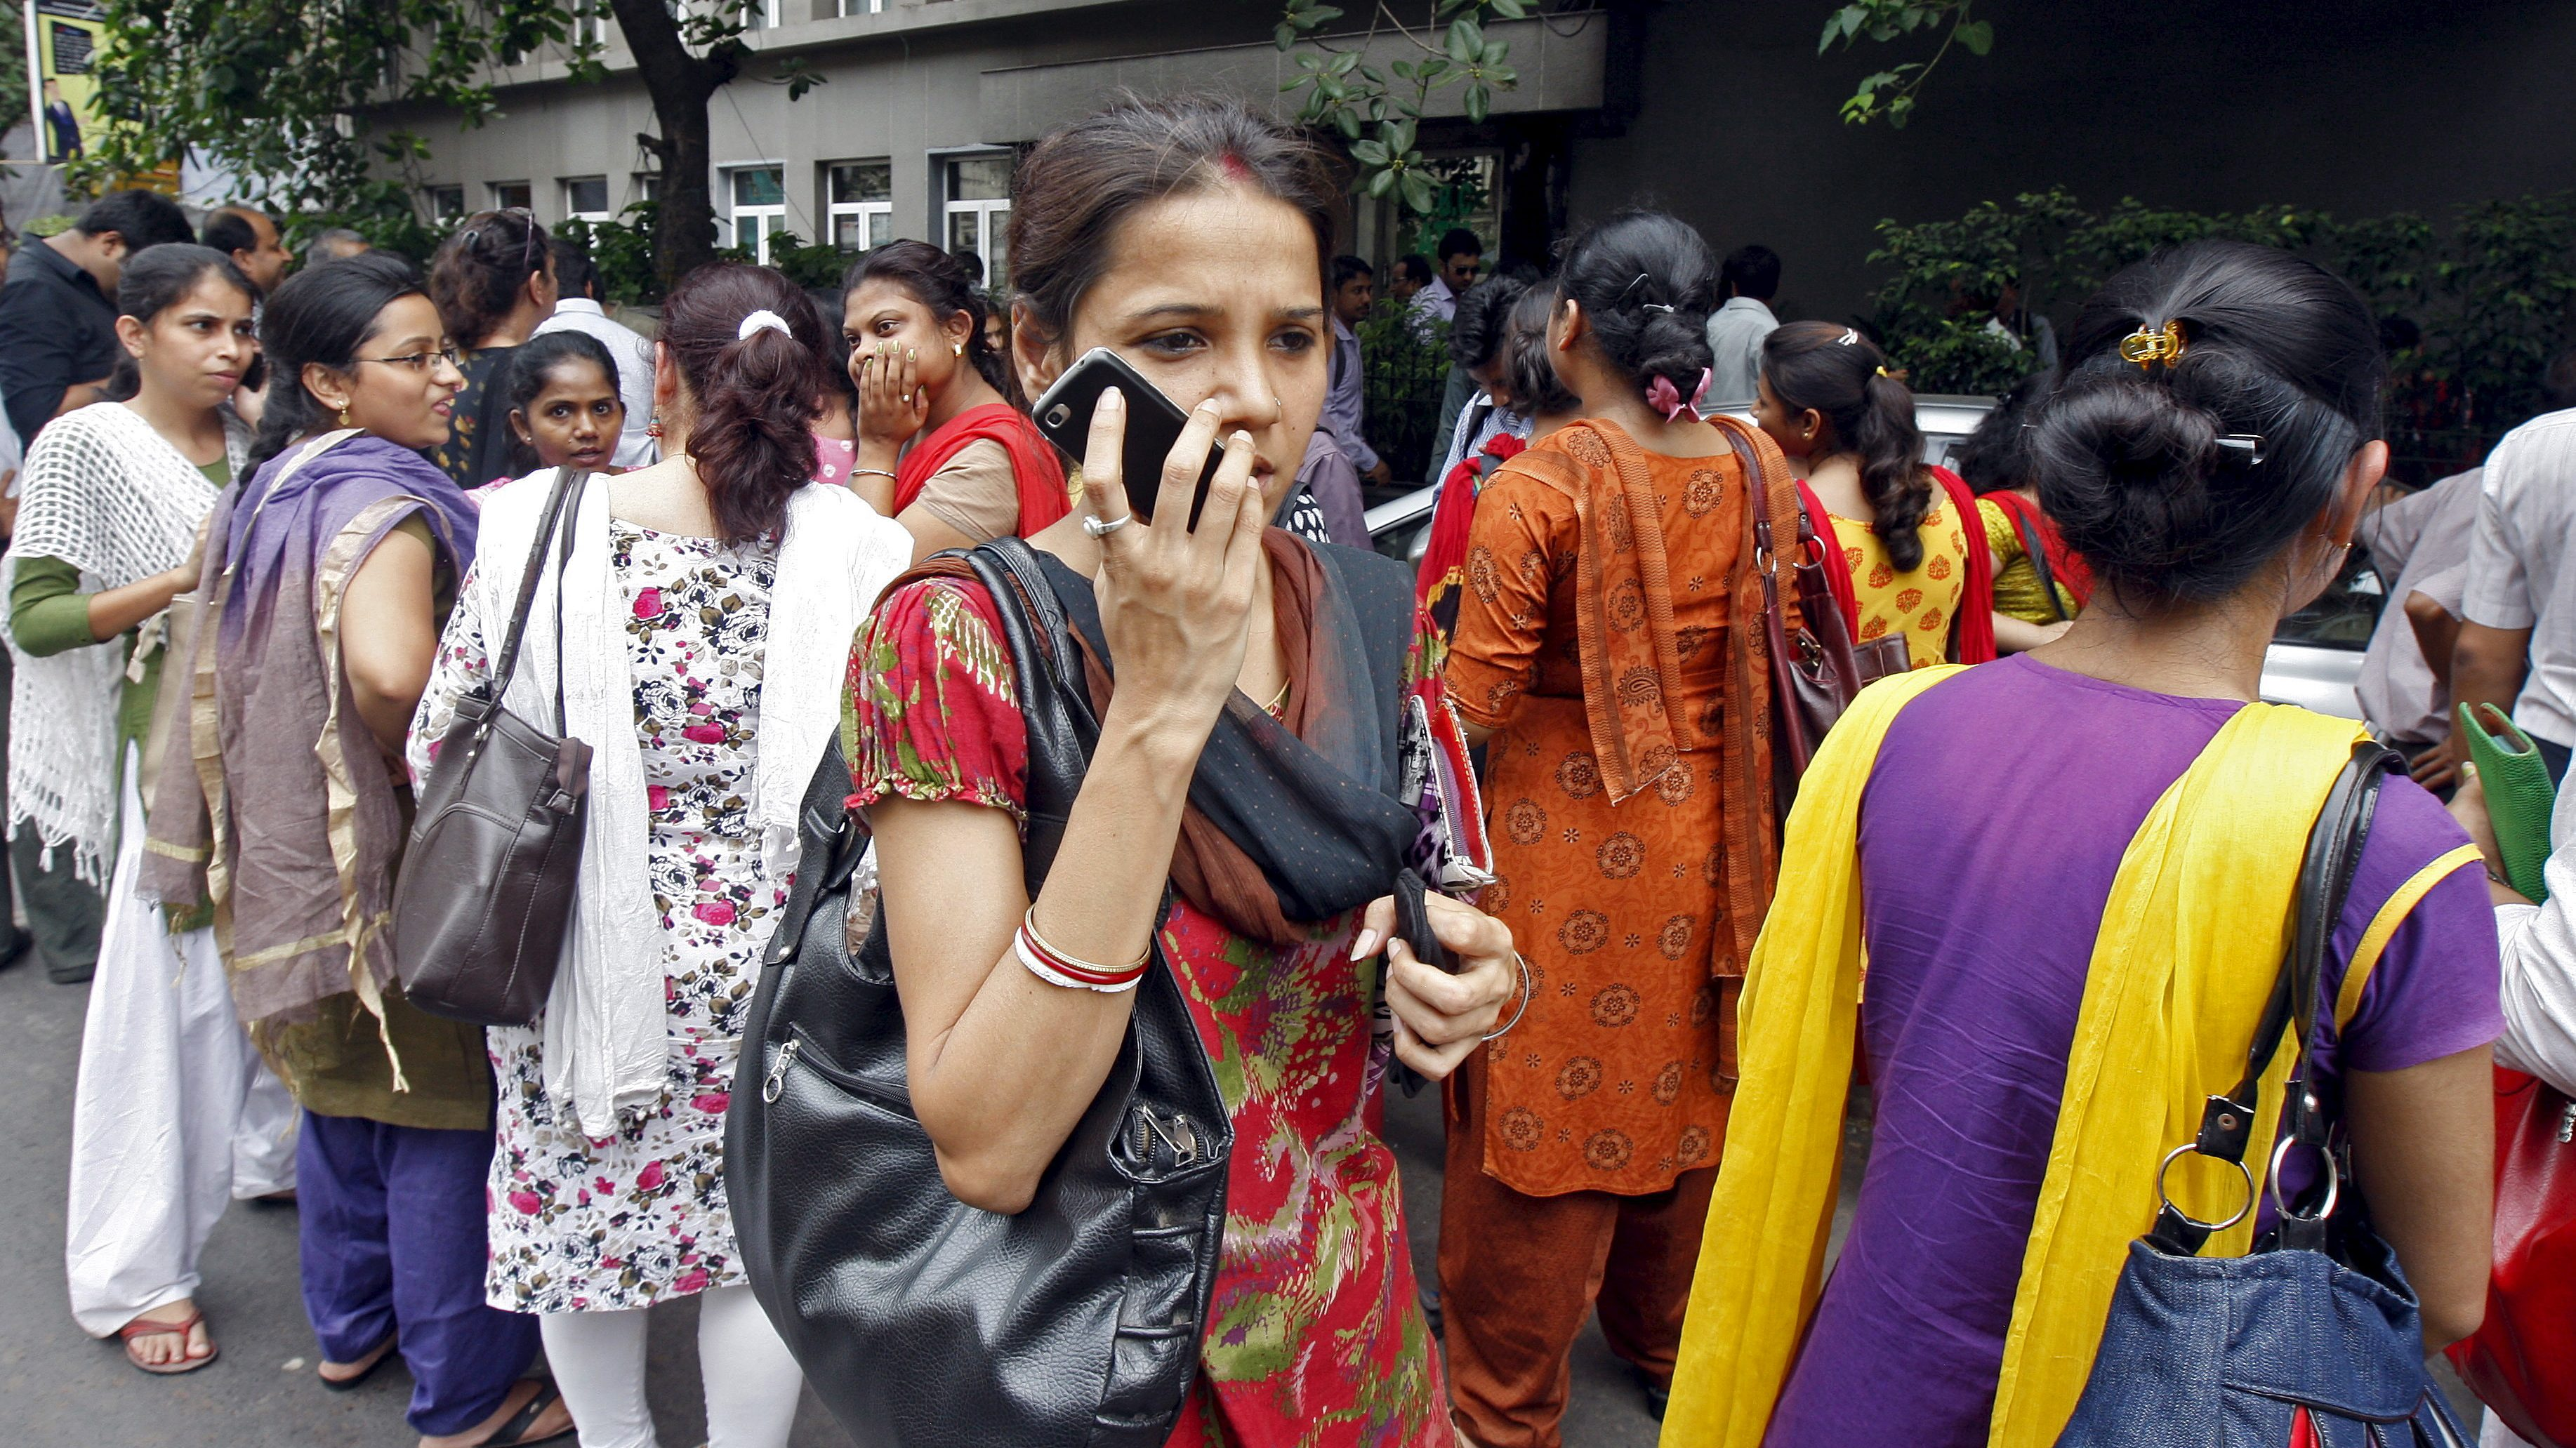 A woman speaks on her mobile phone as she stands with others after vacating their office buildings following an earthquake in Kolkata, India, May 12, 2015. At least four people were killed in a central Nepal town on Tuesday after a 7.3 earthquake shook the Himalayan nation, just weeks after a devastating temblor killed more than 8,000 people and damaged hundreds of thousands of buildings. The U.S. Geological Survey said Tuesday's earthquake was centred 68 km (about 42 miles) west of the town of Namche Bazar, close to Mount Everest and the border with Tibet. A magnitude 7.3 quake, it was felt as far apart as New Delhi and Dhaka, the capital of Bangladesh. REUTERS/Rupak De Chowdhuri  - RTX1CK76